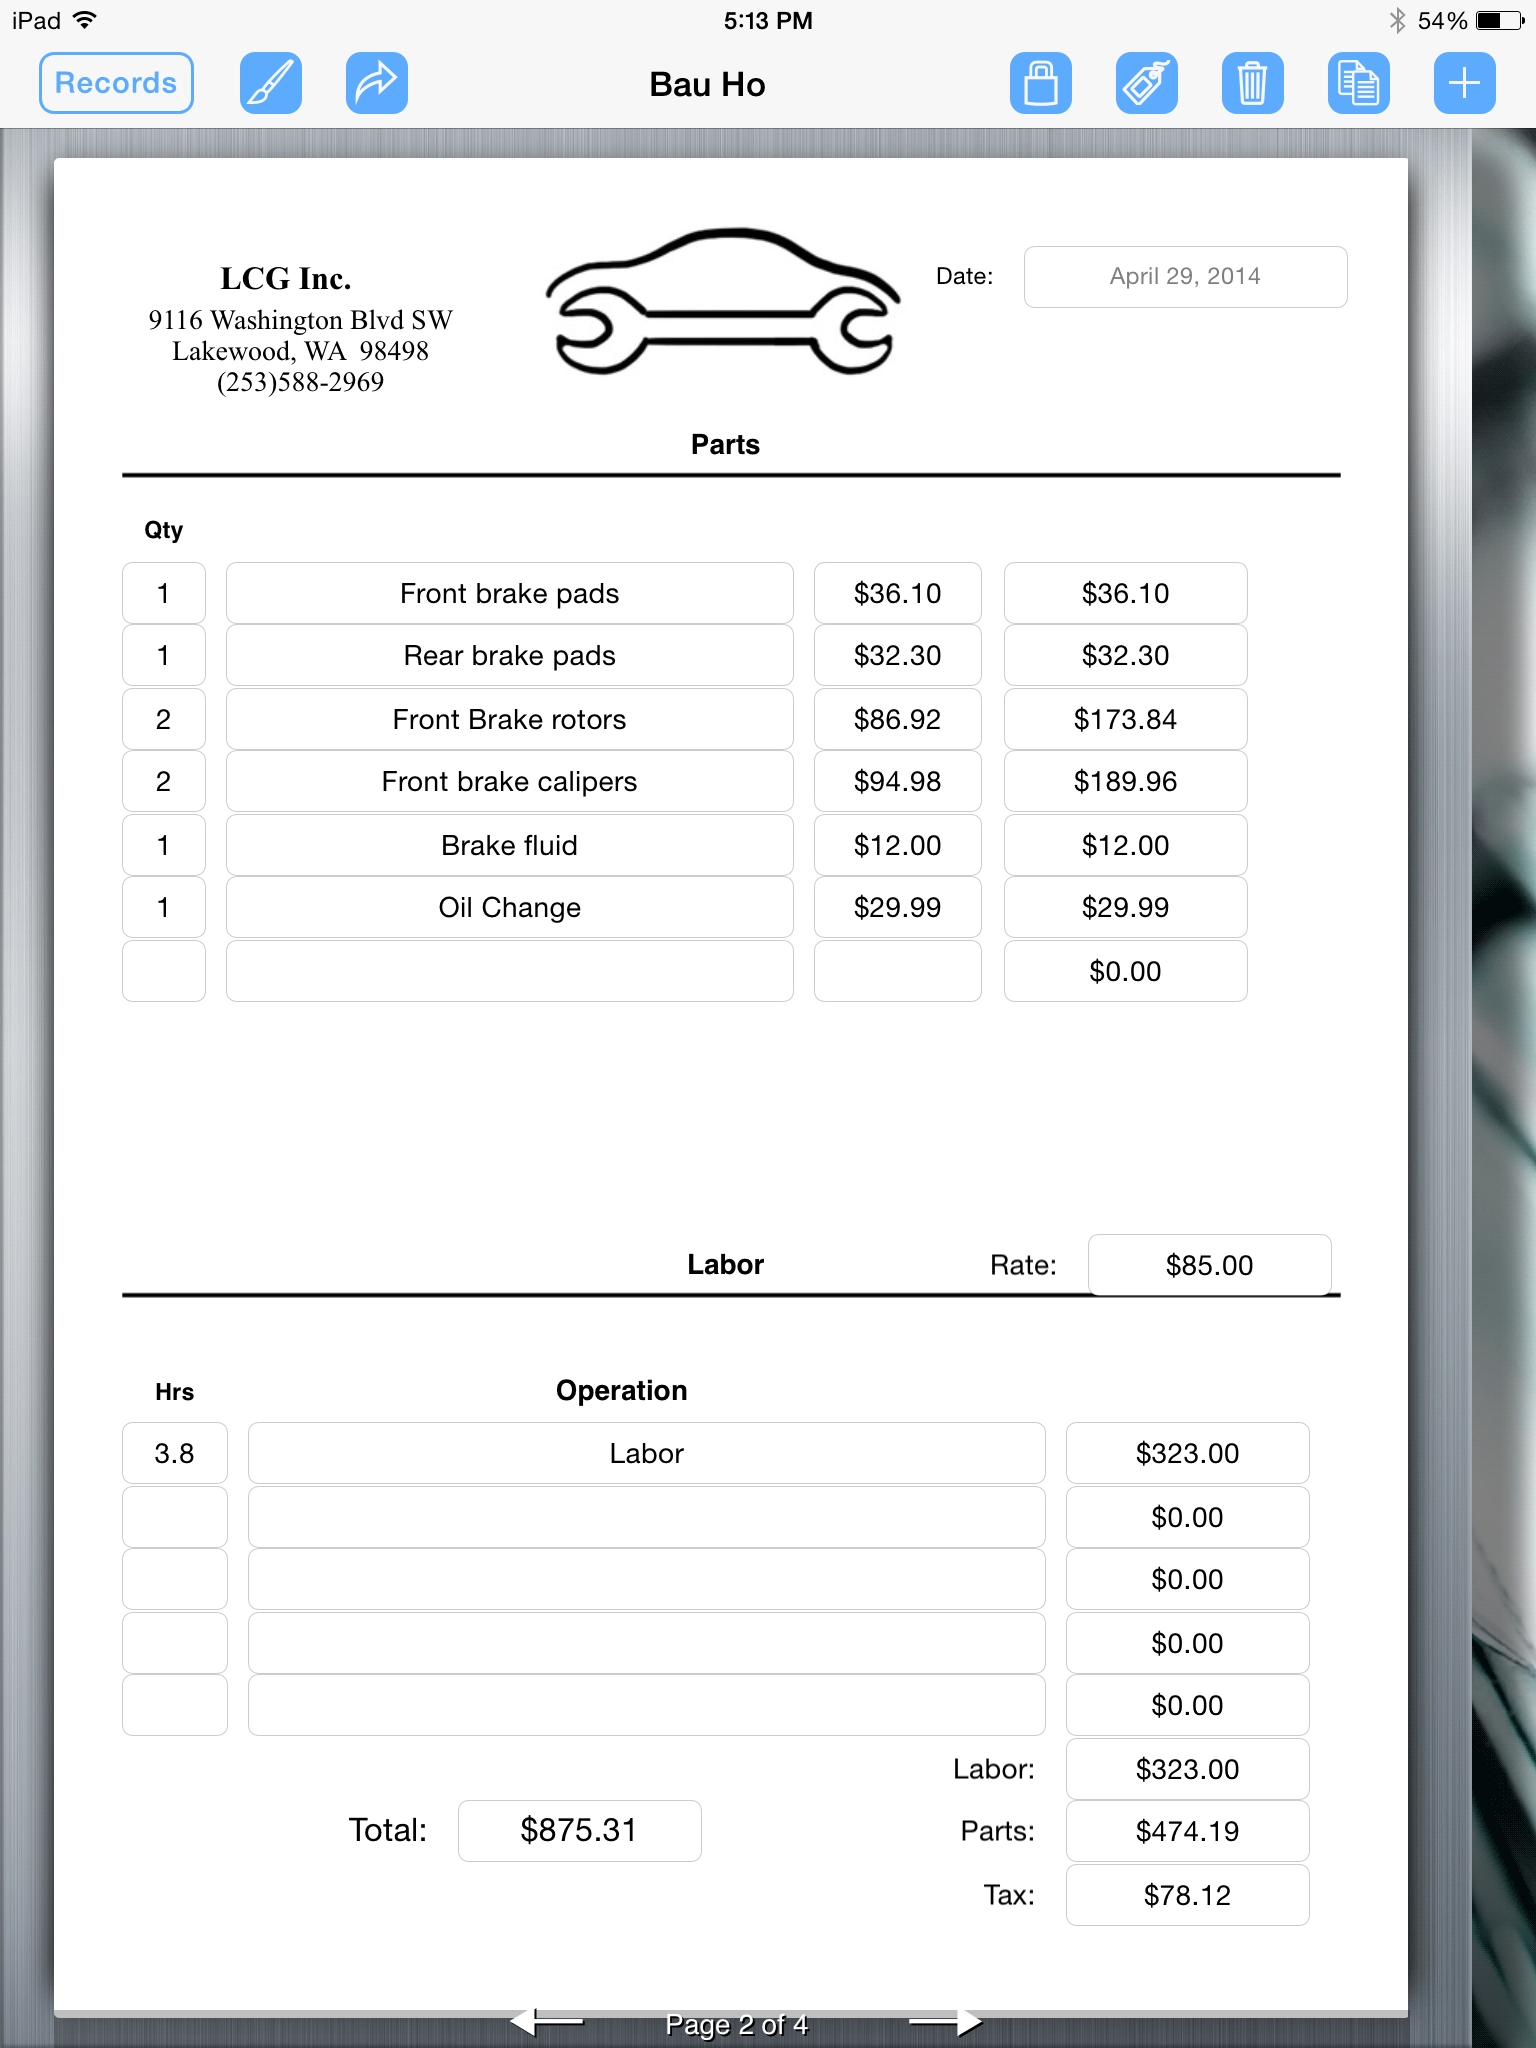 auto repair service uses ipad for creating an invoice form creating an invoice